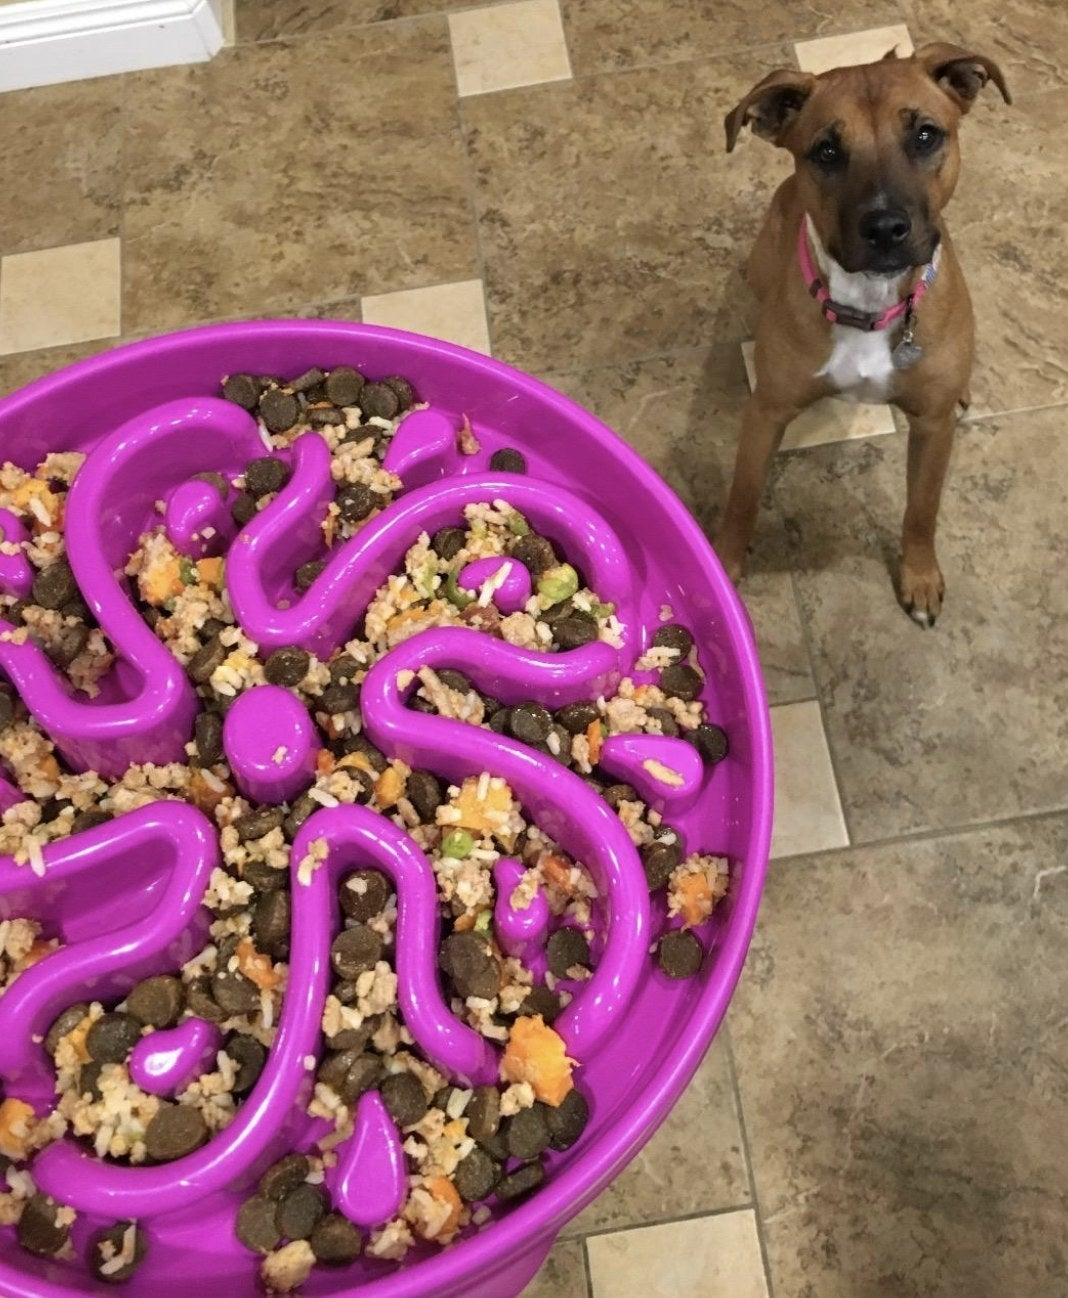 Reviewer's dog sits waiting to be served meal in fun feeder